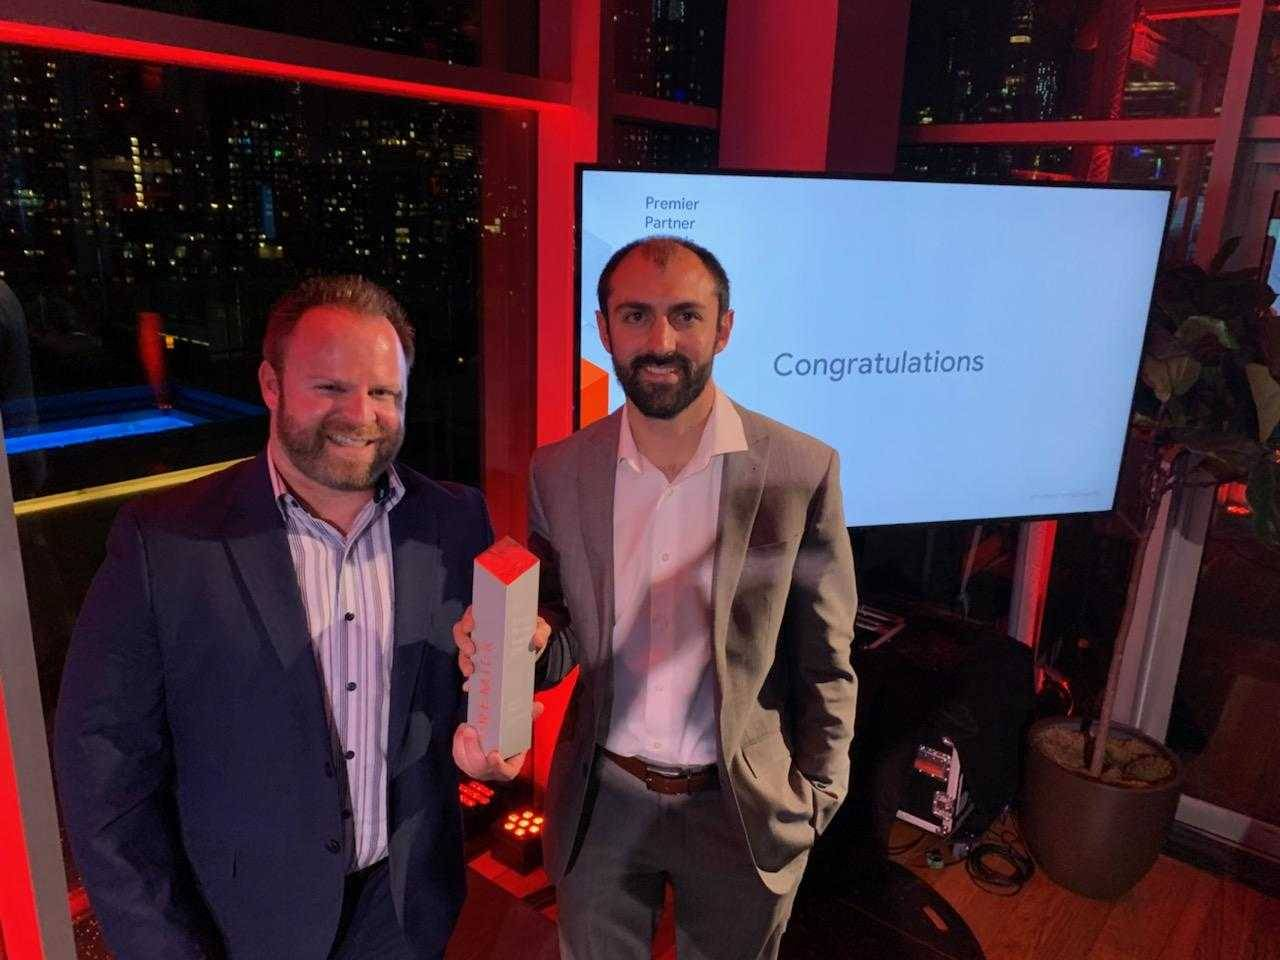 Matt Neely, Vice President of Client Services and Brian Aldrich, Director of Enterprise Search accept Premier Partner Award from Google.Logical Position